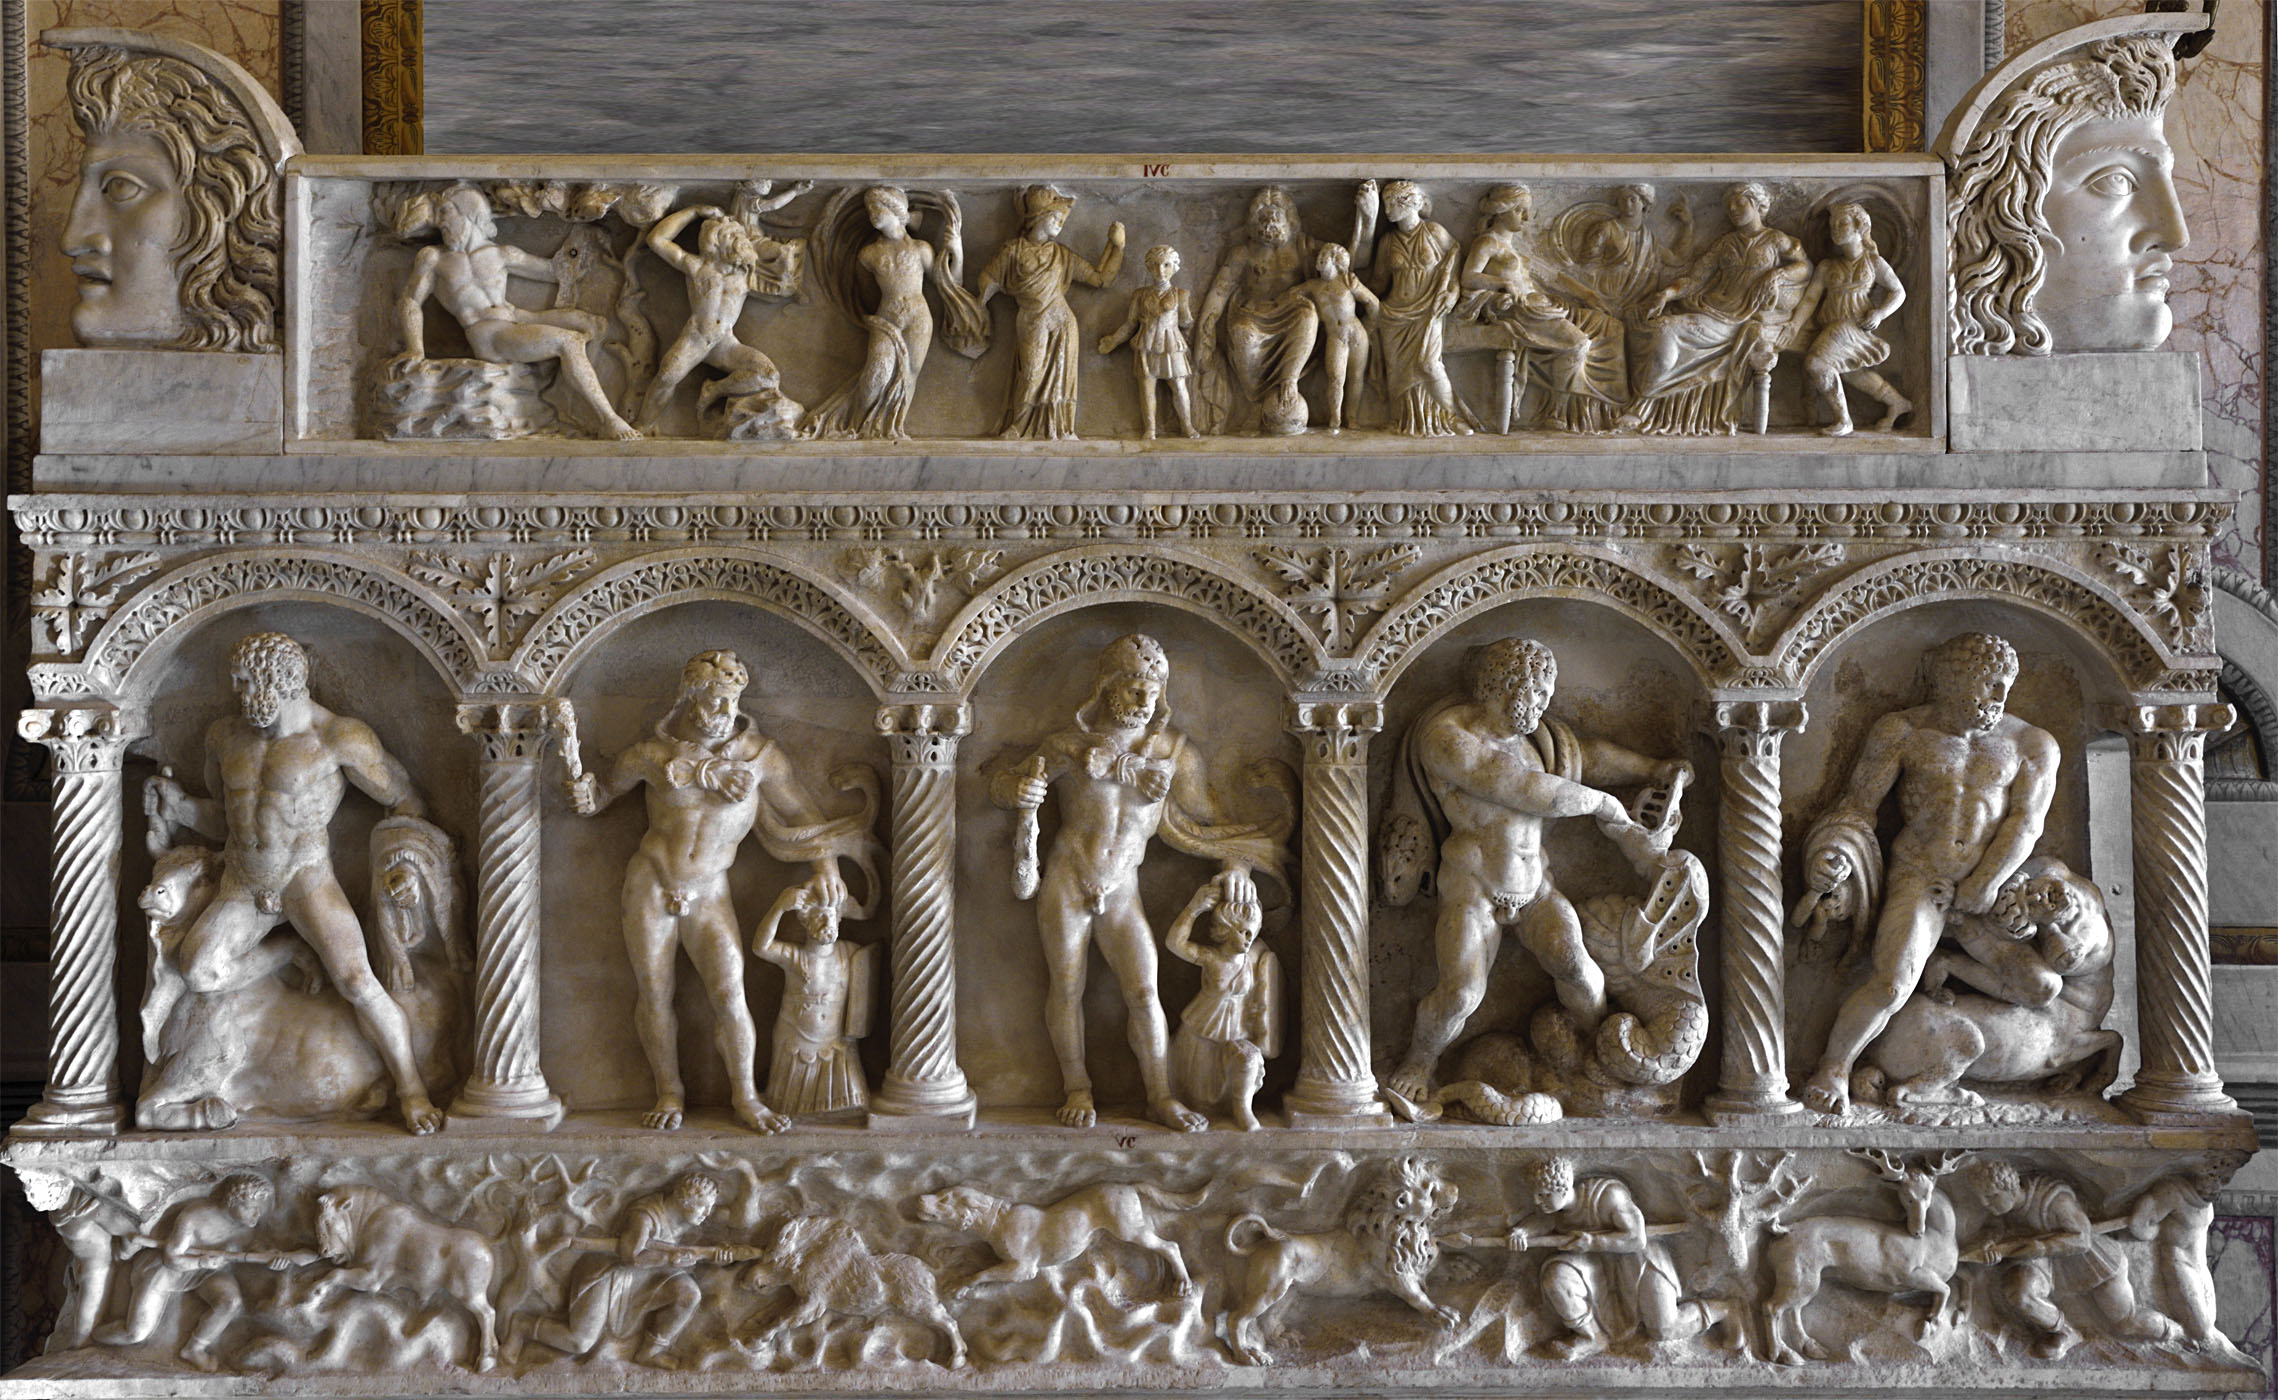 Rear of columnar sarcophagus showing the Labours of Heracles and scenes of hunt. Frieze of a sarcophagus lid showing the presentation of Apollo and Artemis to Zeus. Acroteria. Rear wall: asiatic marble. 160 CE.  Inv. No. VC. Lid: Italian marble. Ca. 150 CE.  Inv. No. IVC. Rome, Museum and Gallery of Villa Borghese, Room II